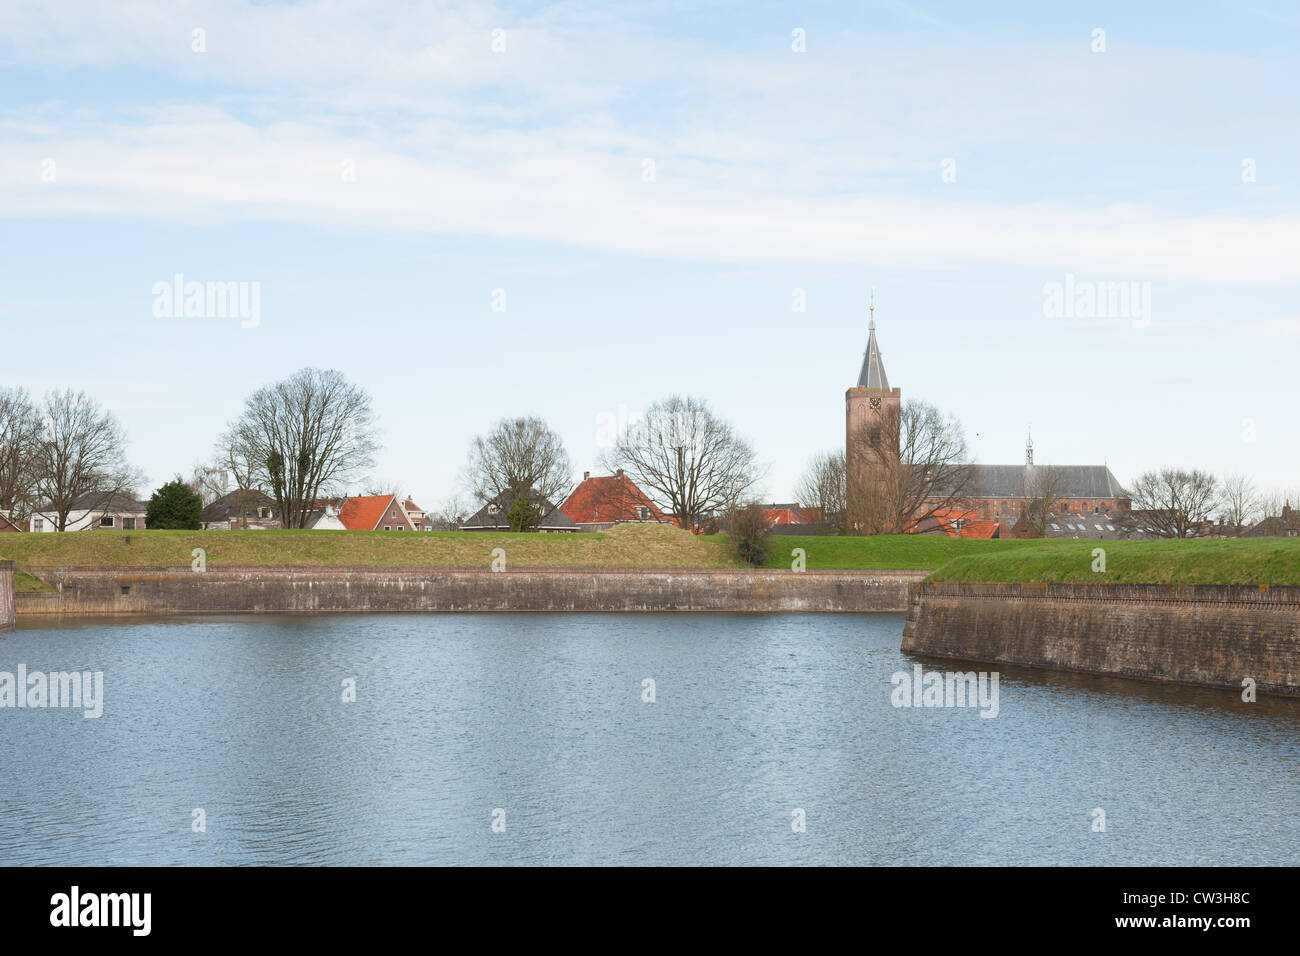 Landscape with fortress Naarden and village - Stock Image